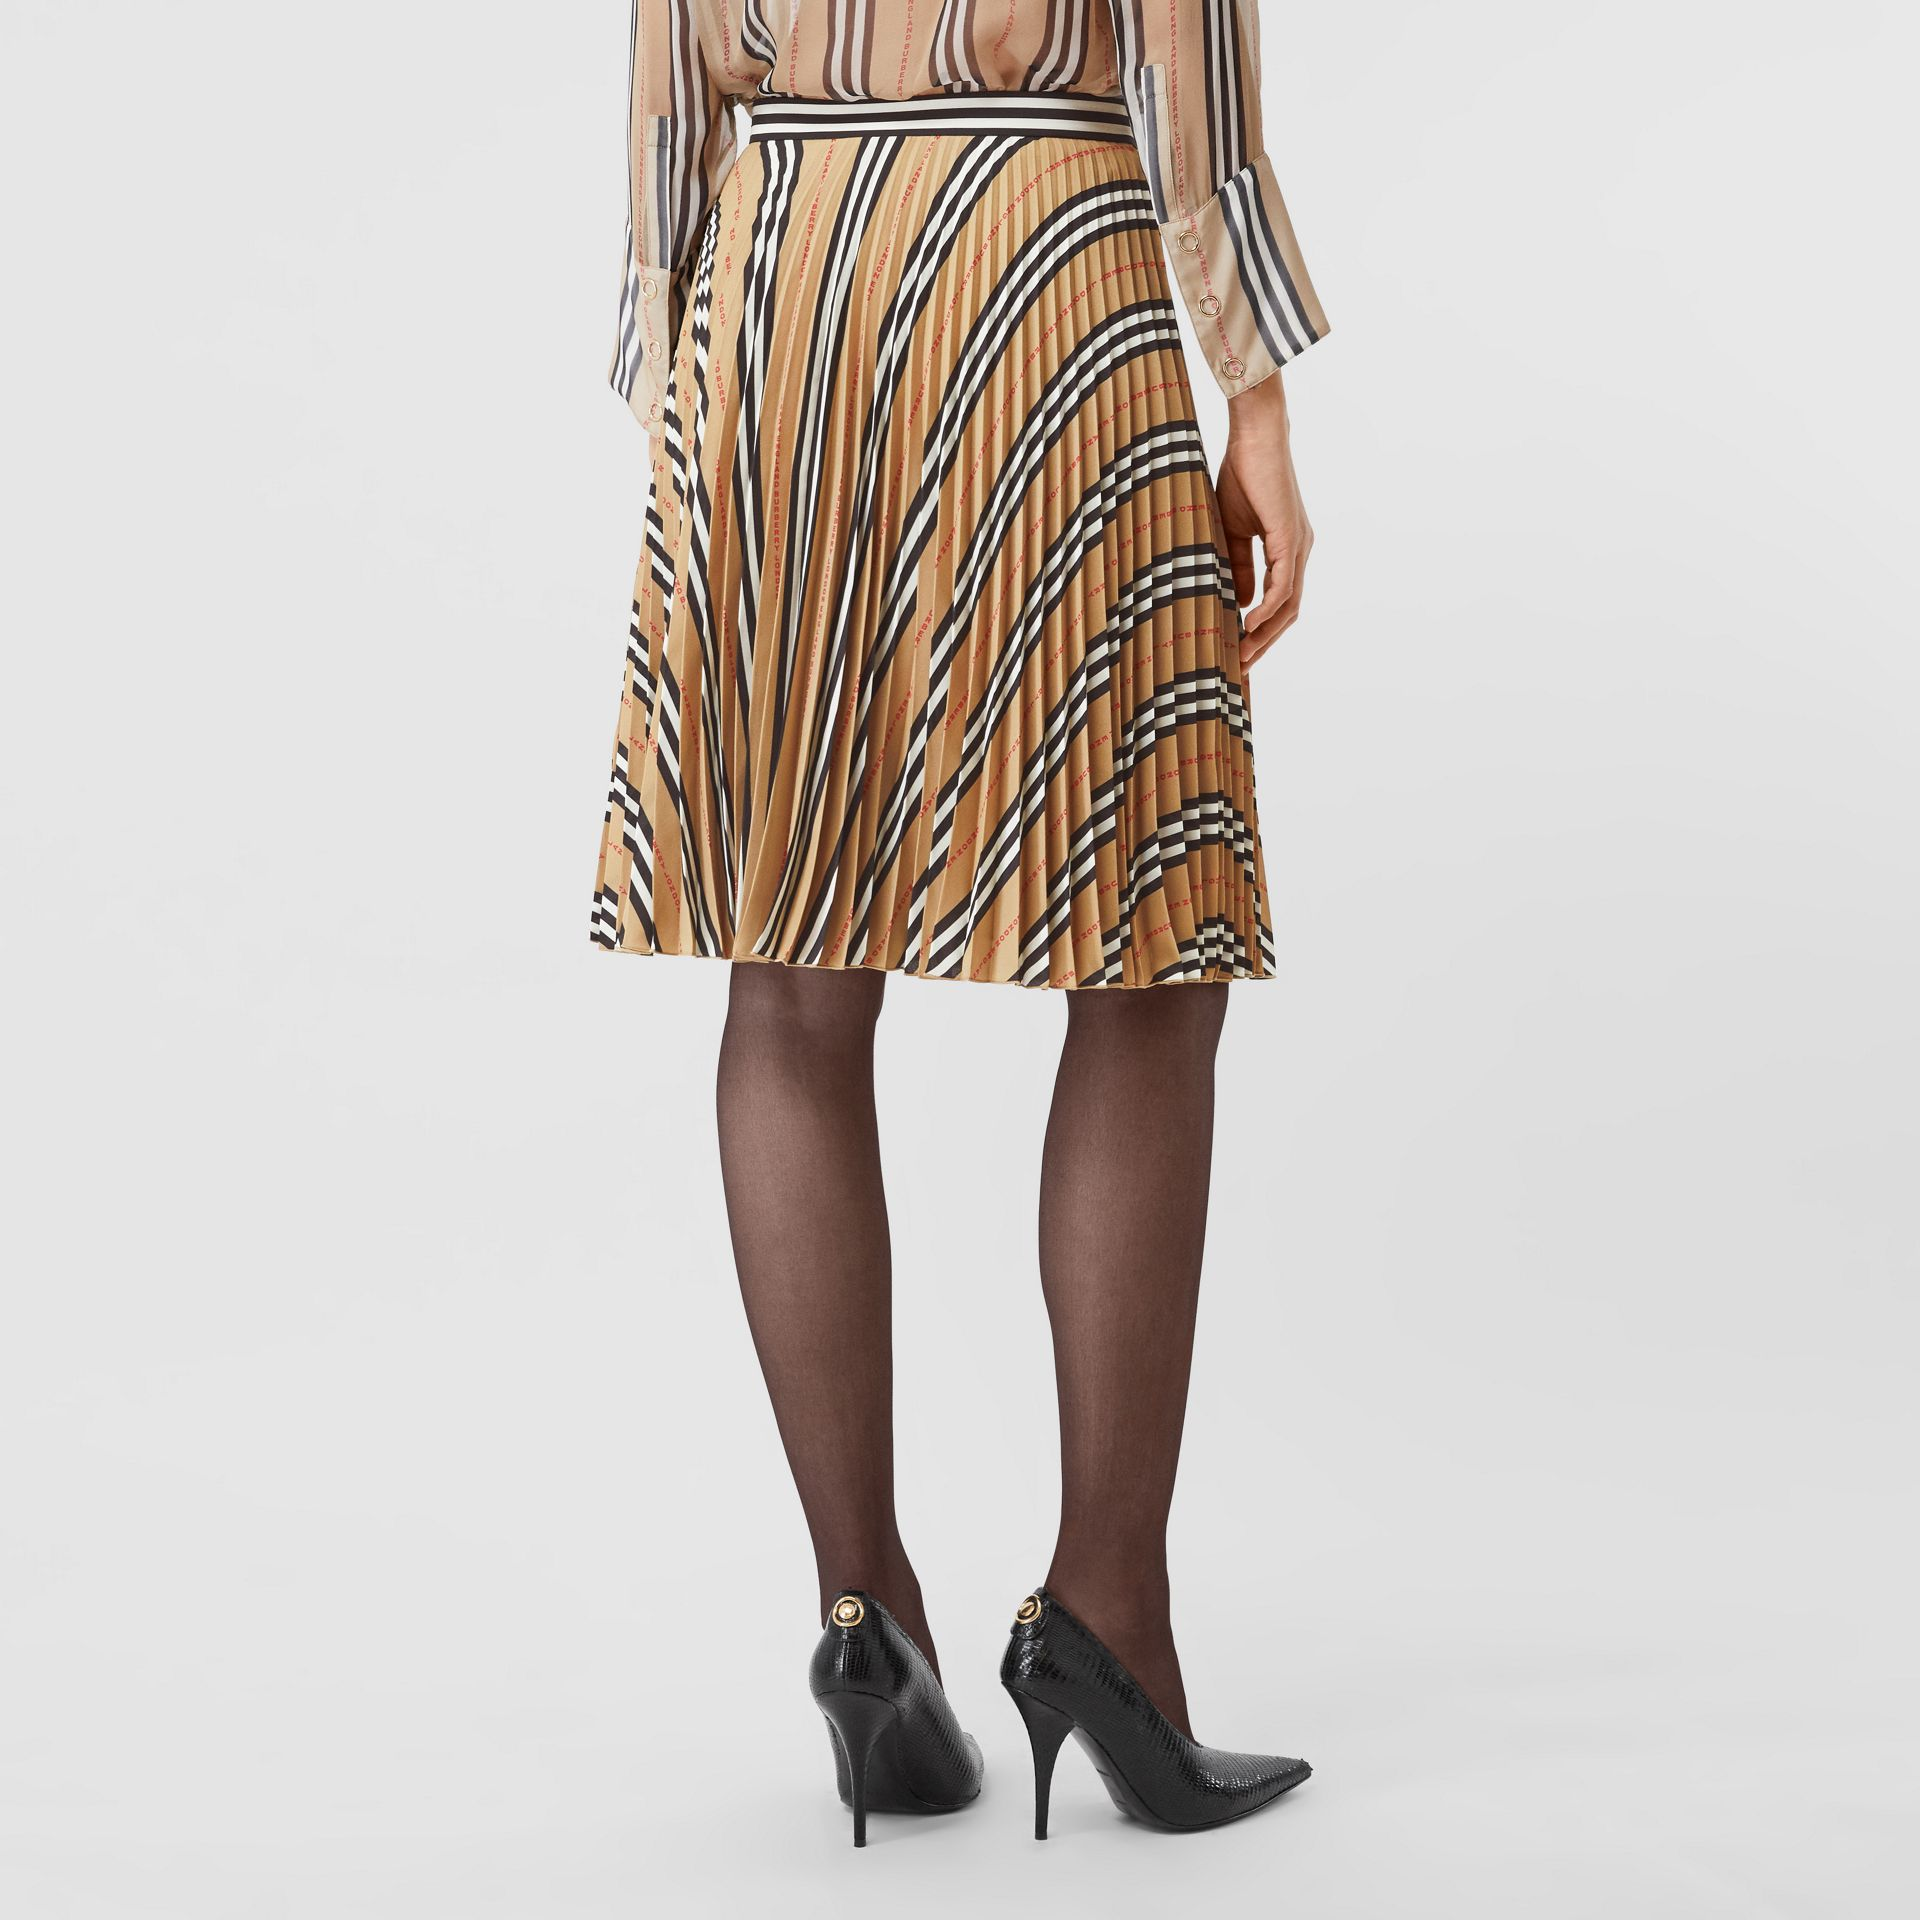 Logo and Stripe Print Crepe Pleated Skirt in Archive Beige - Women | Burberry - gallery image 2